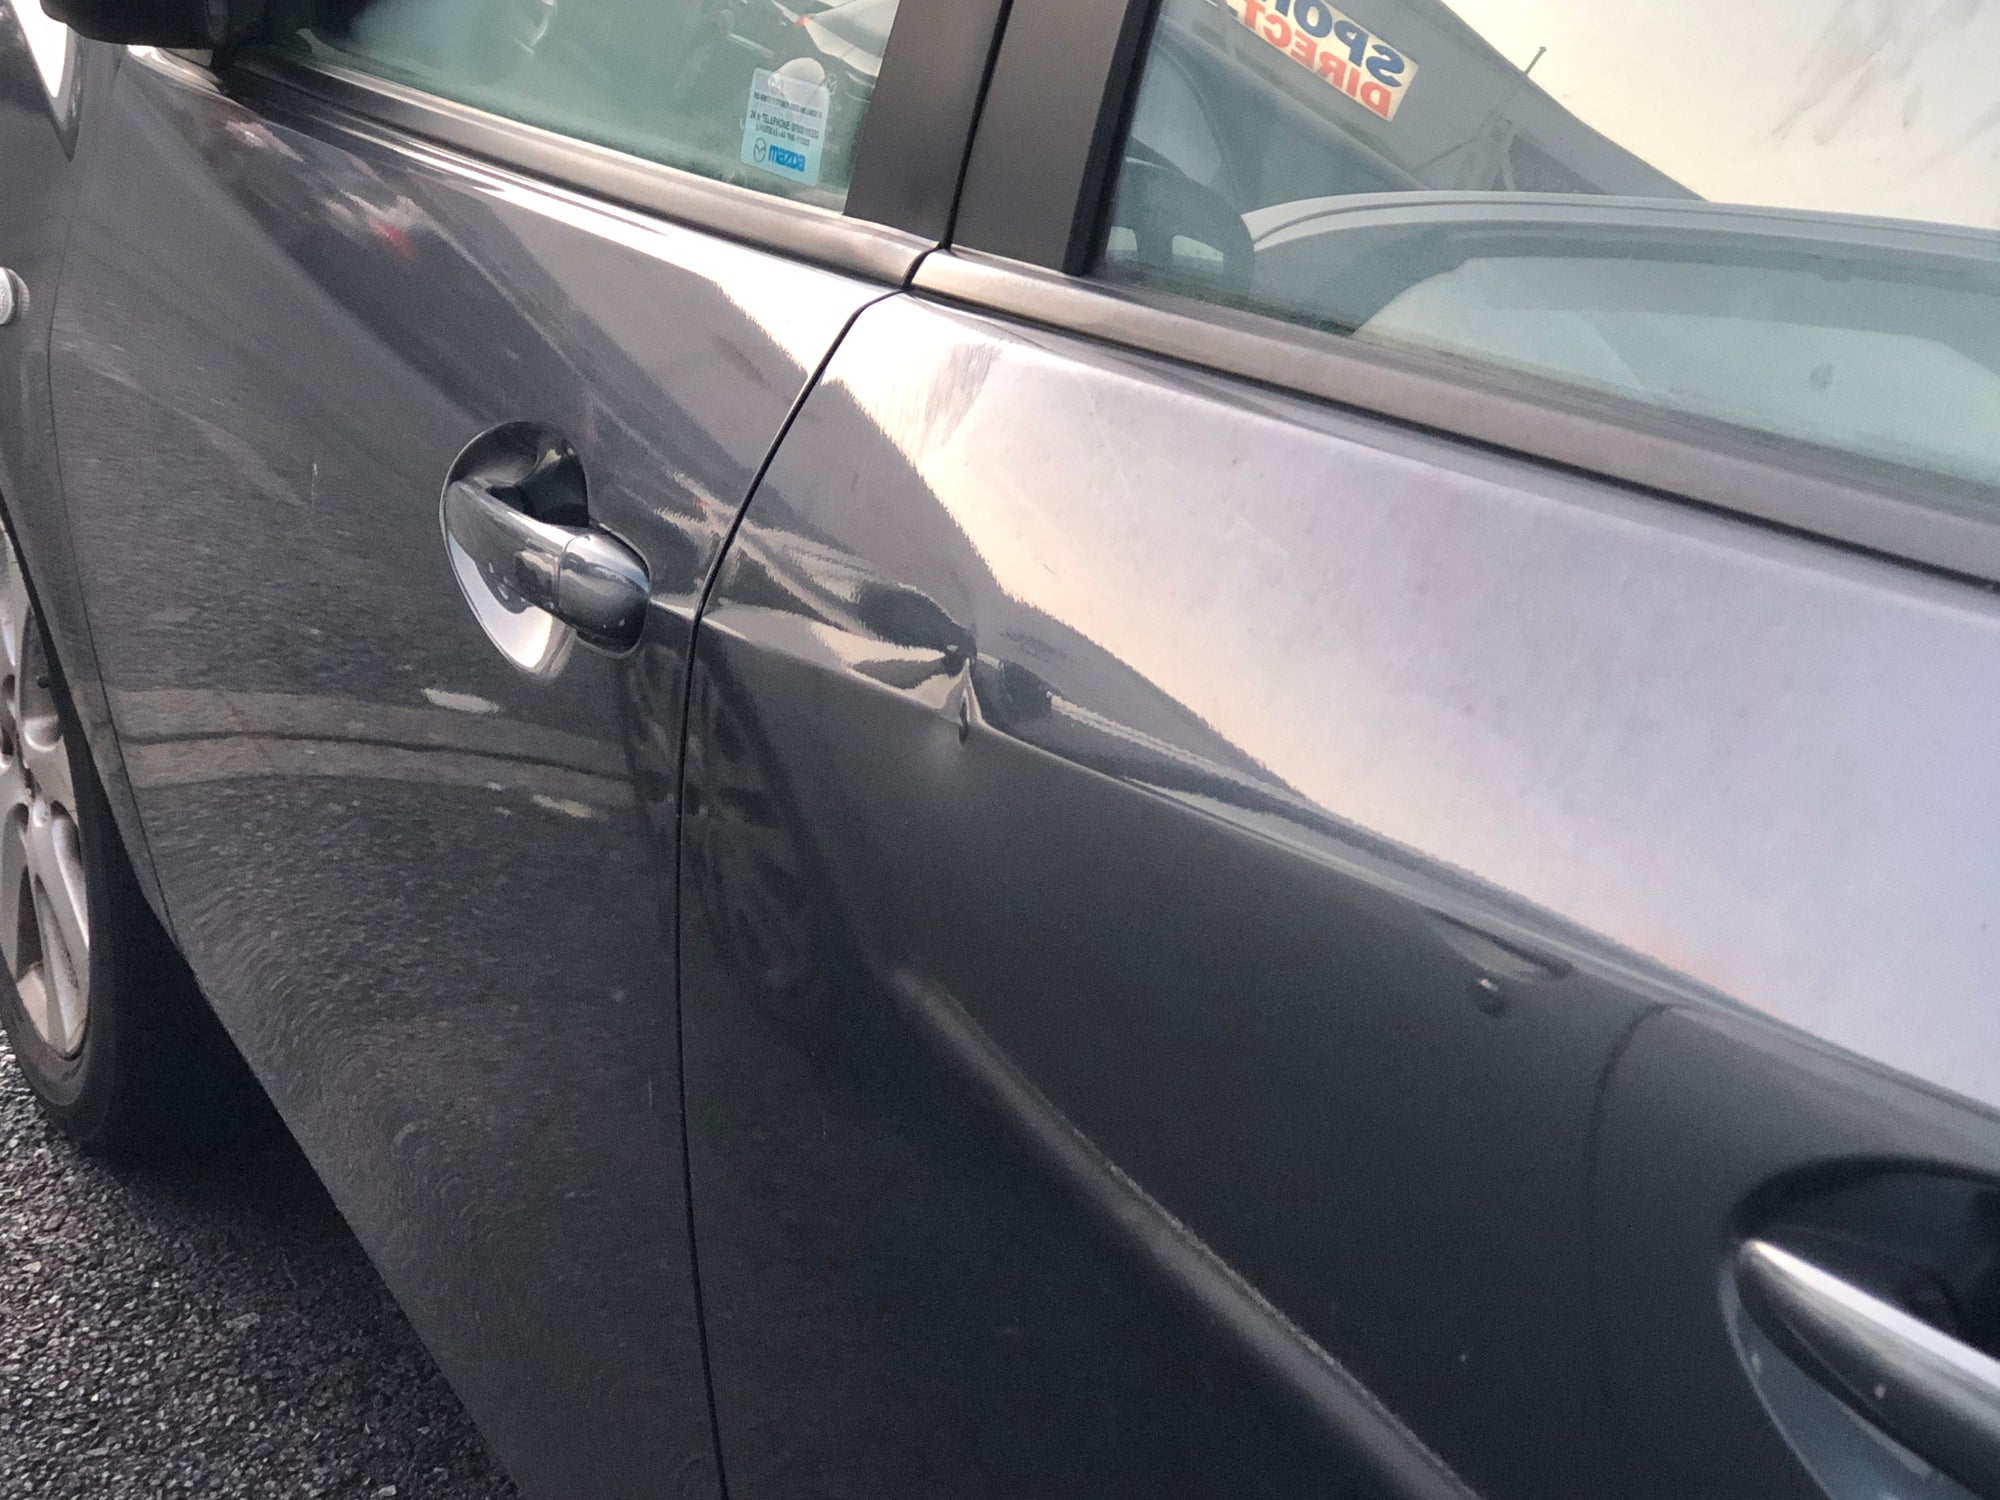 Dent in side of car